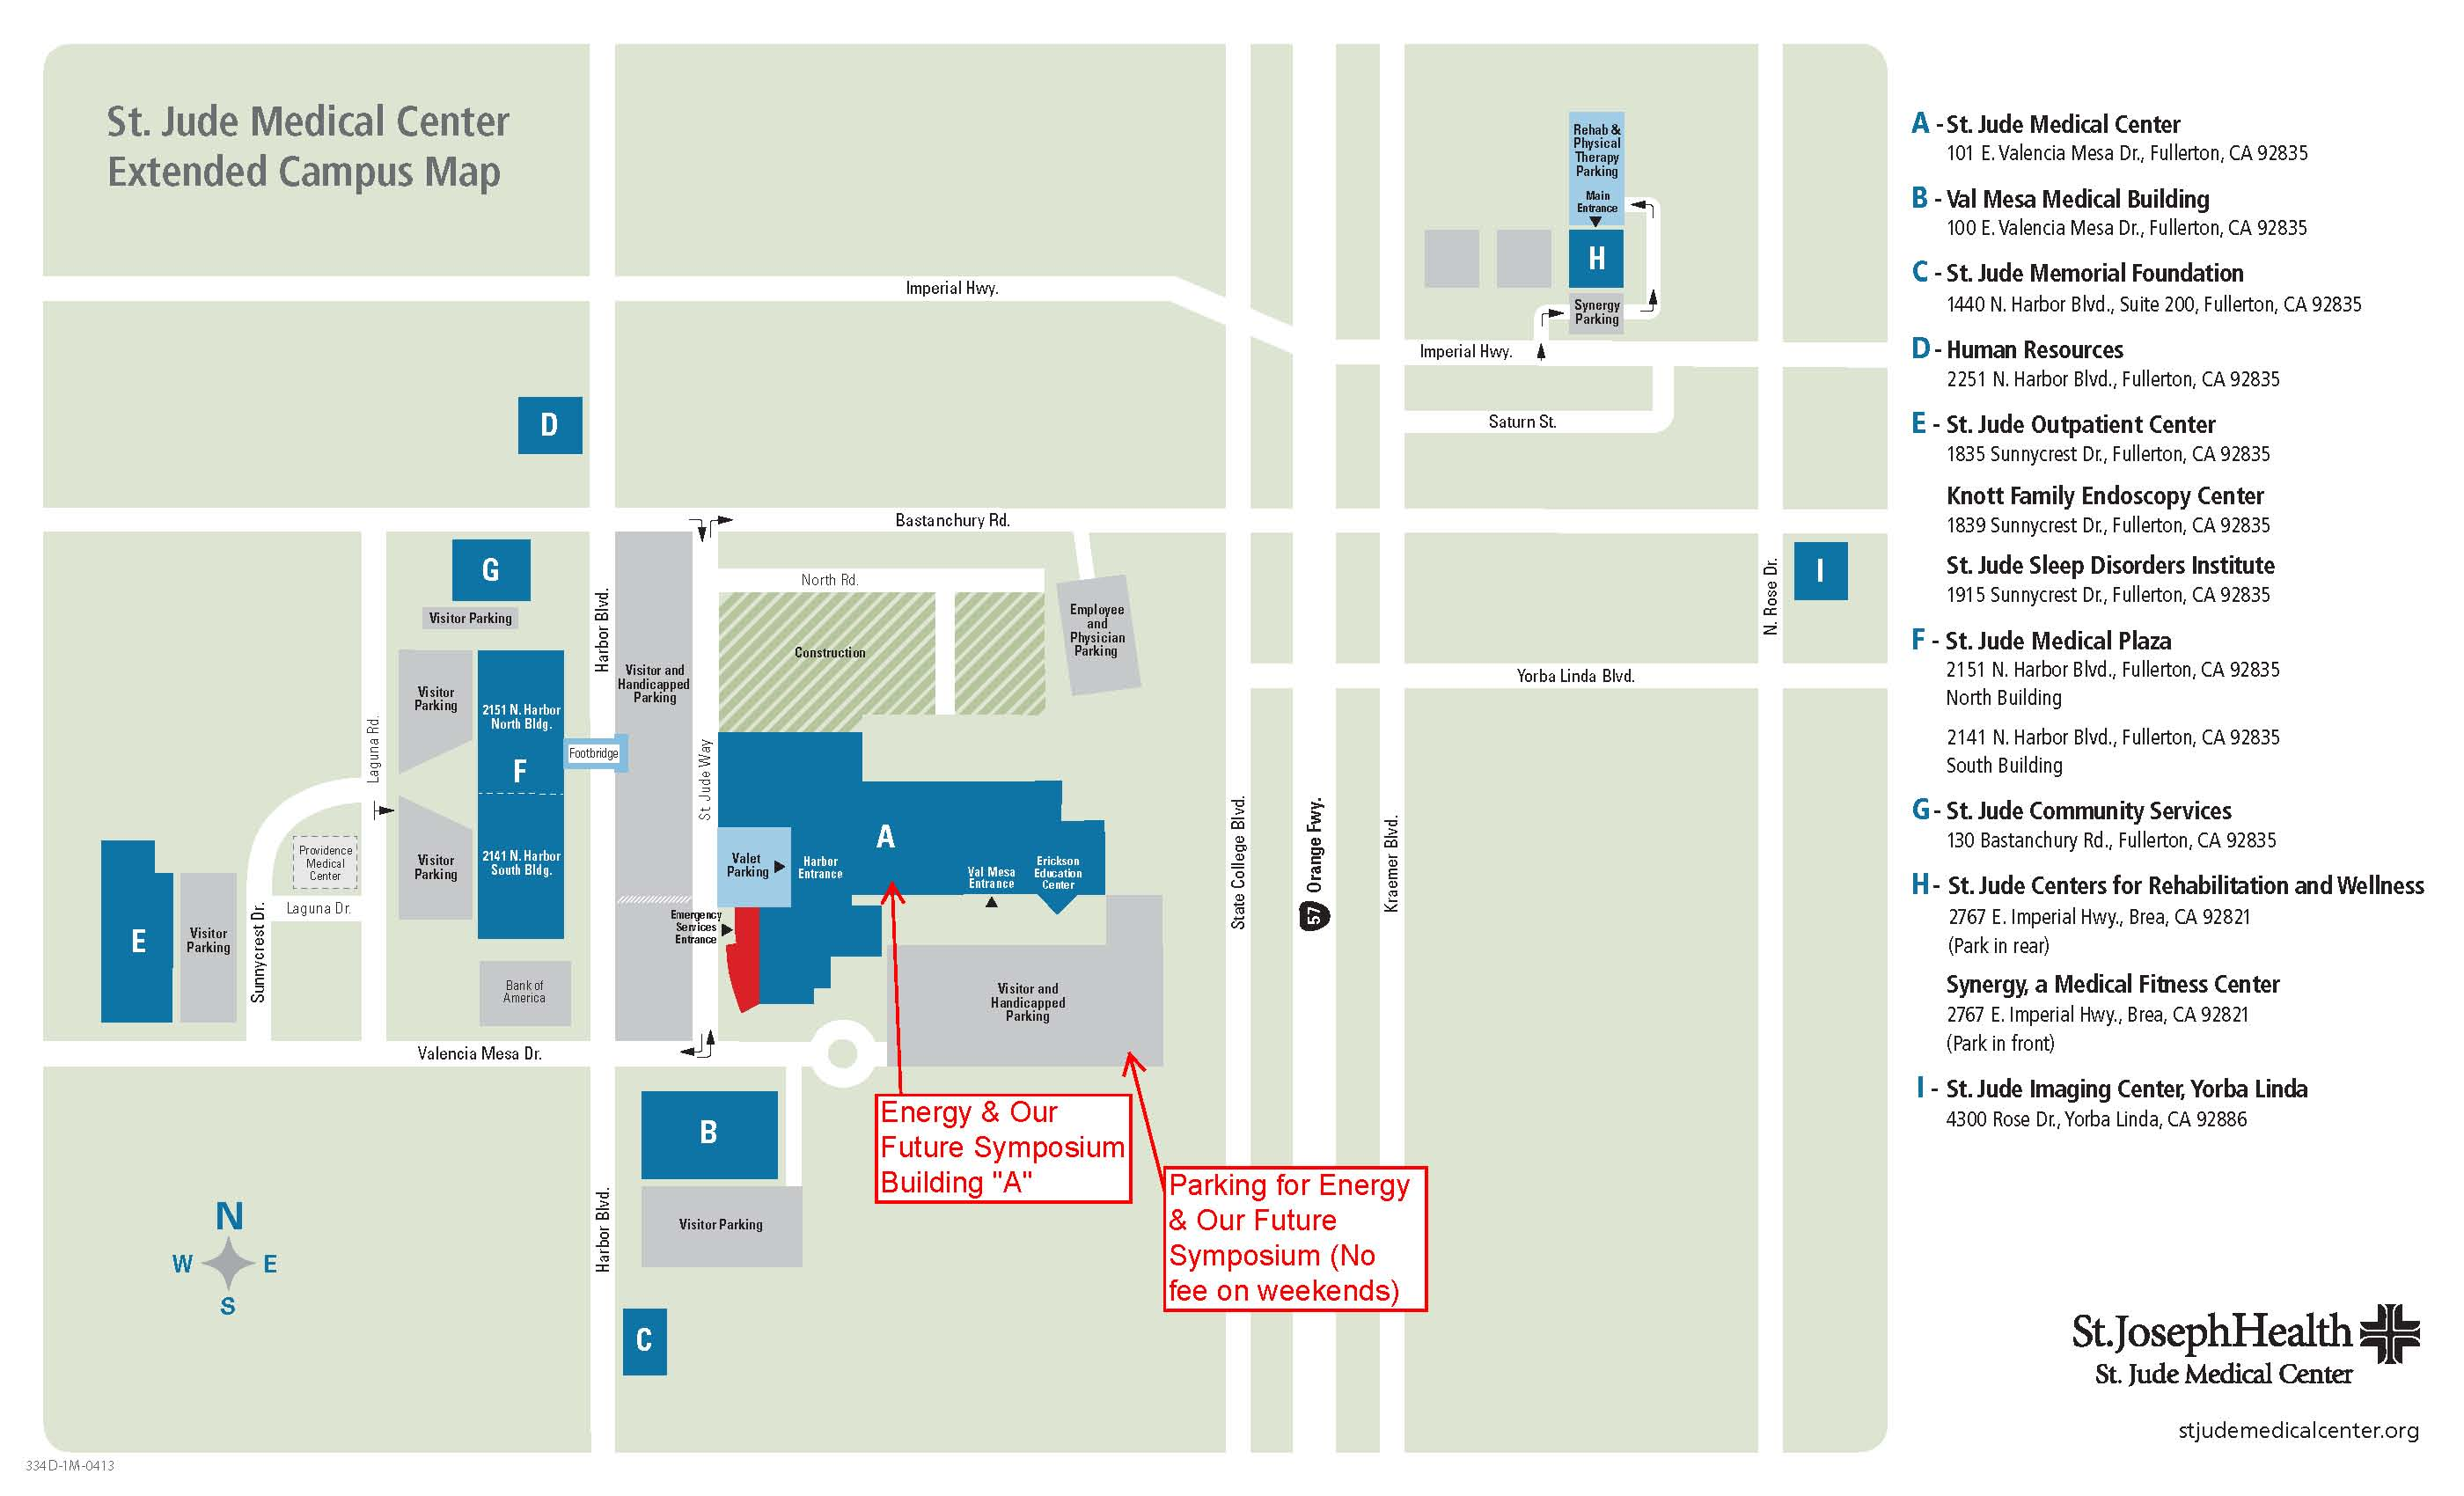 SJMC_extended_campus_map_April_2013_(2).jpg